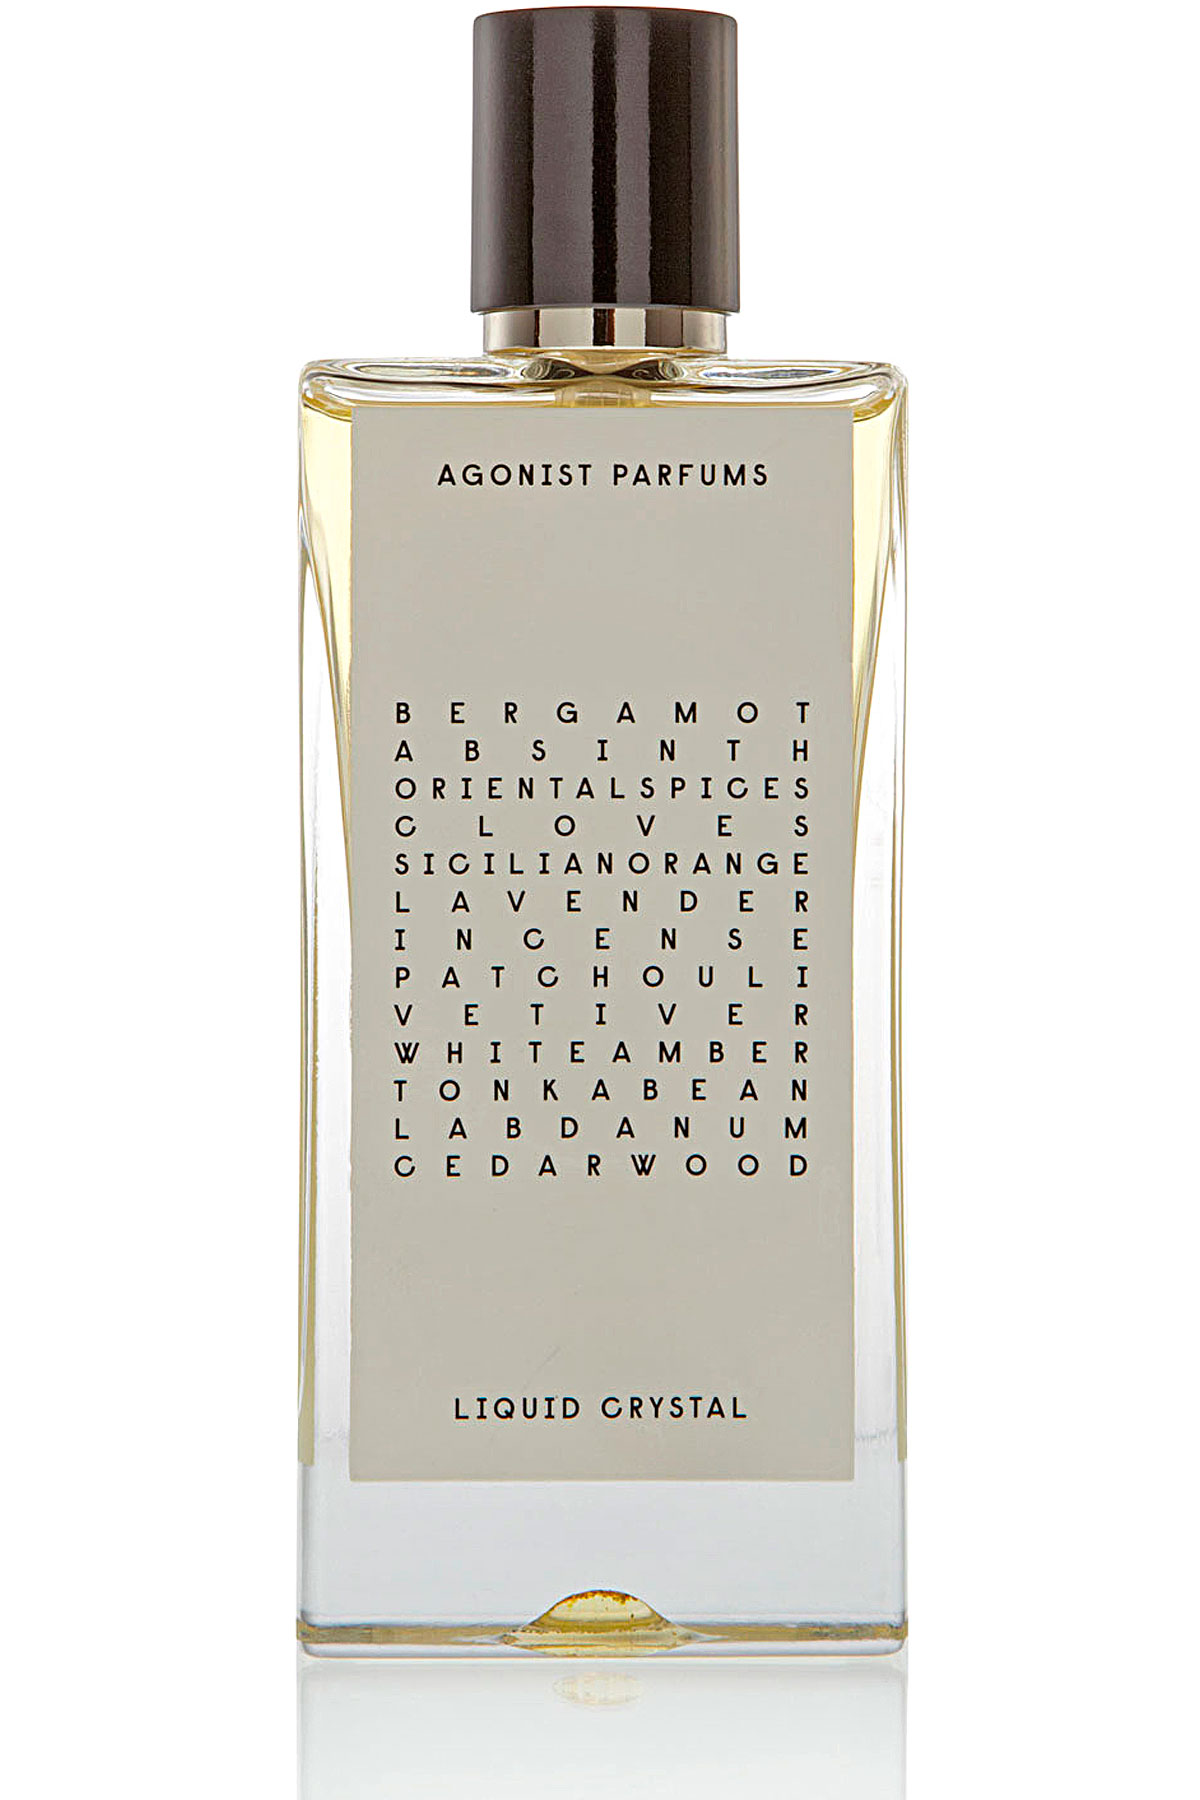 Agonist Fragrances for Men, Liquid Crystal - Eau De Parfum - 50 Ml, 2019, 50 ml